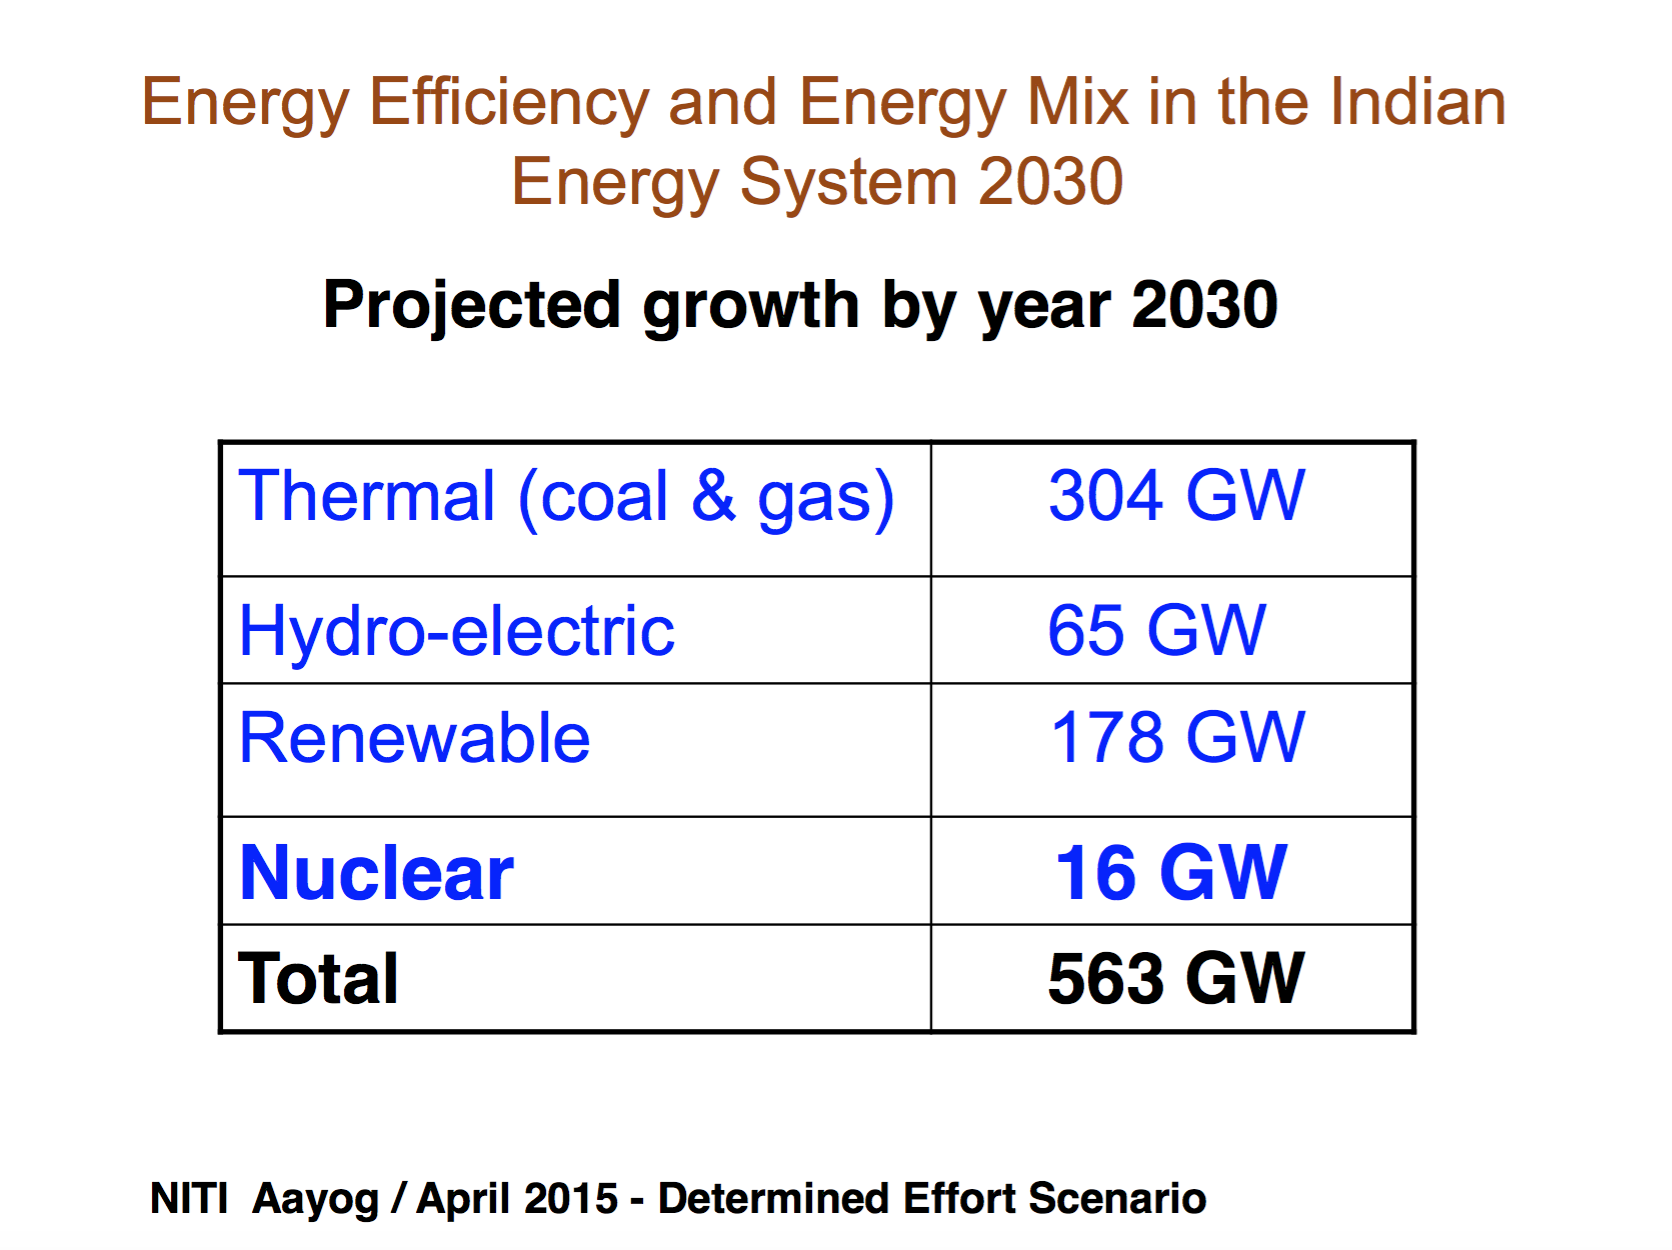 SLIDE FROM NUCLEAR POWER CORPORATION OF INDIA LIMITED